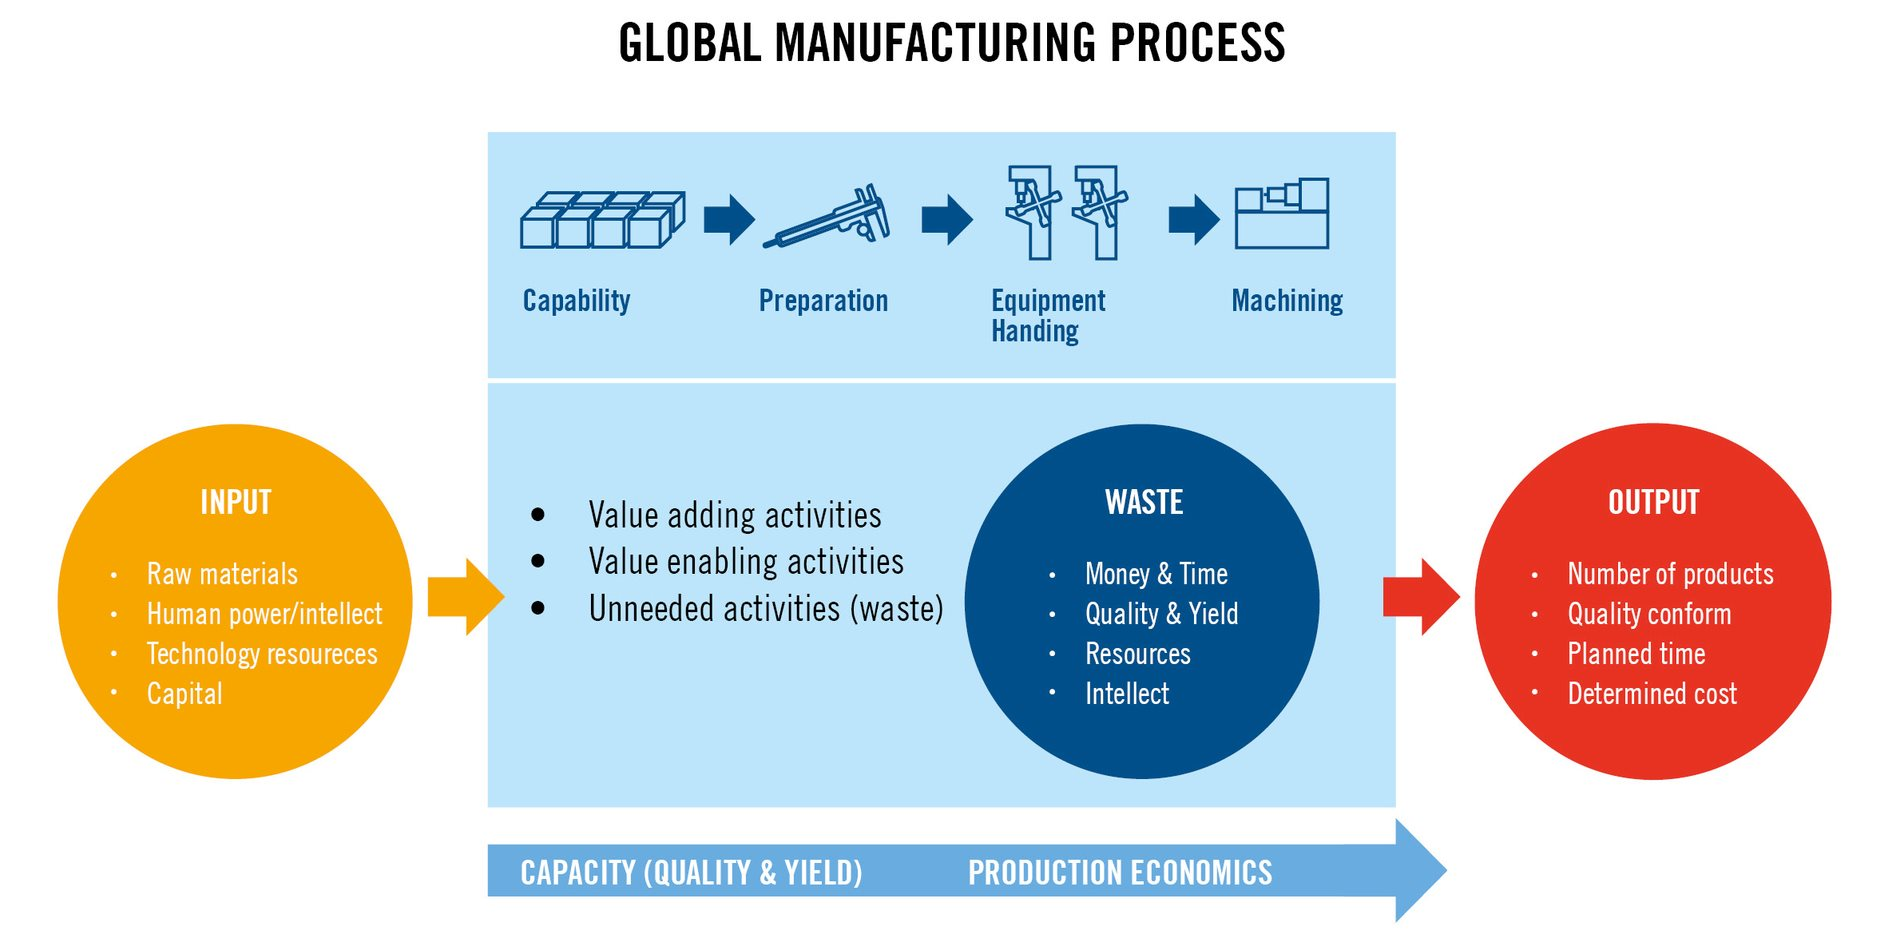 Global manufacturing process